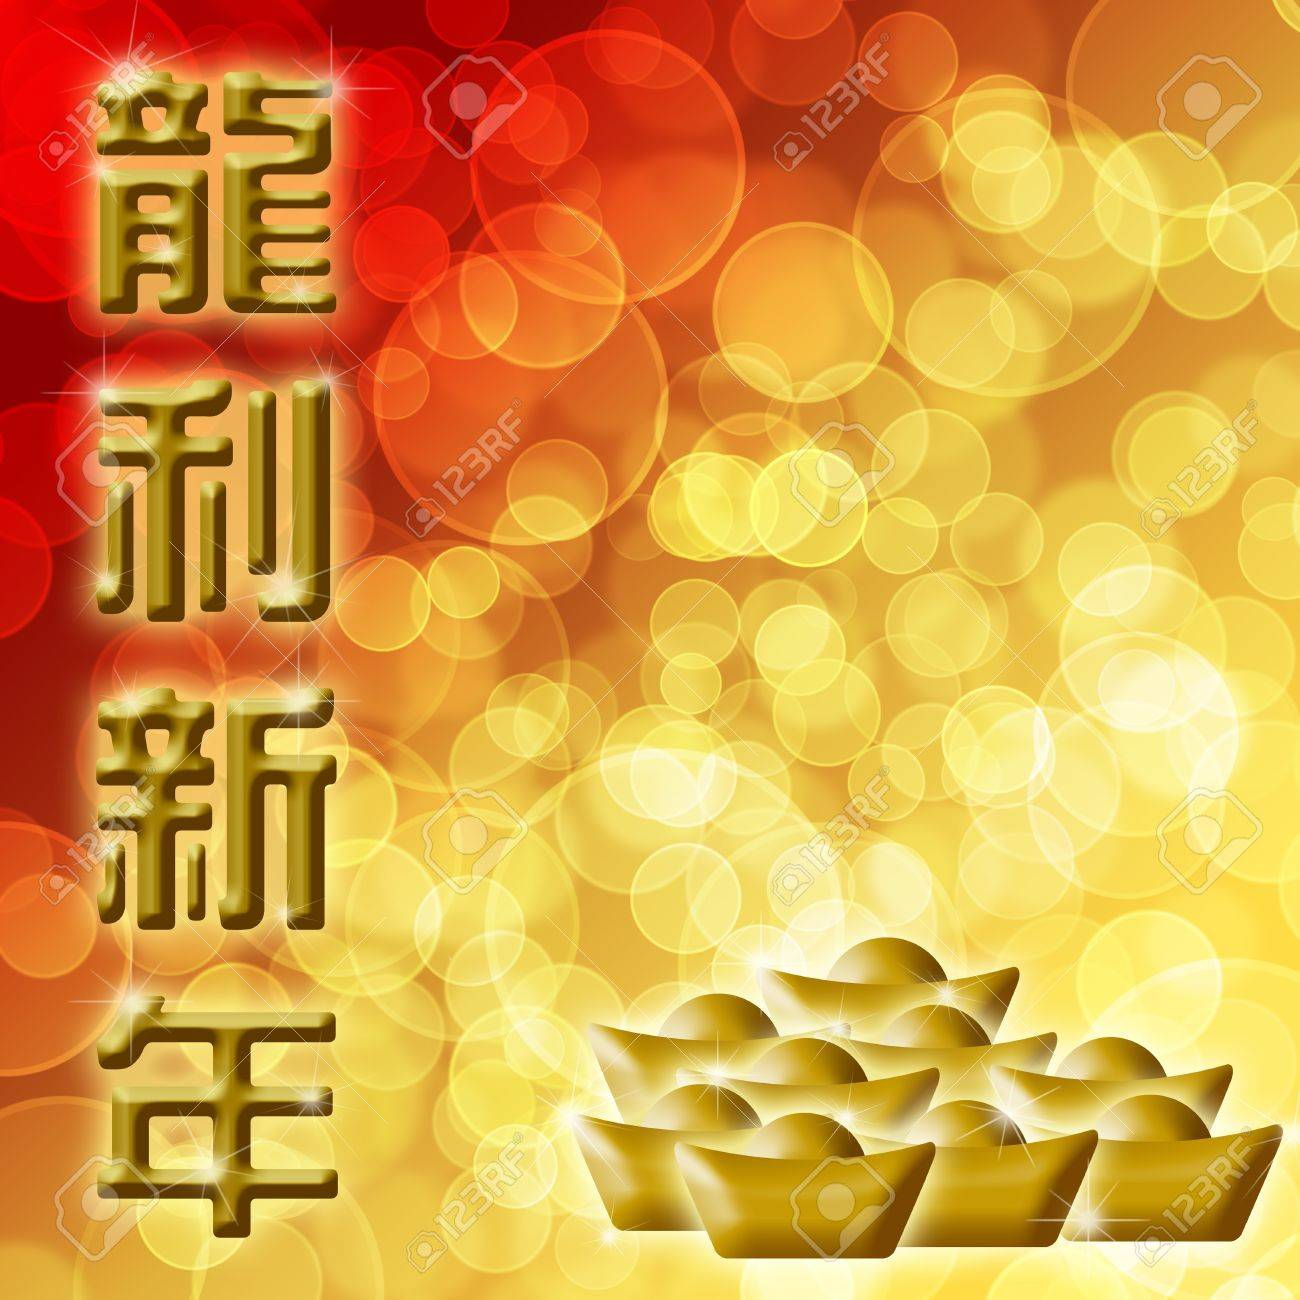 Happy Chinese New Year Dragon Calligraphy with Blurred Bokeh Background Illustration Stock Illustration - 10740239